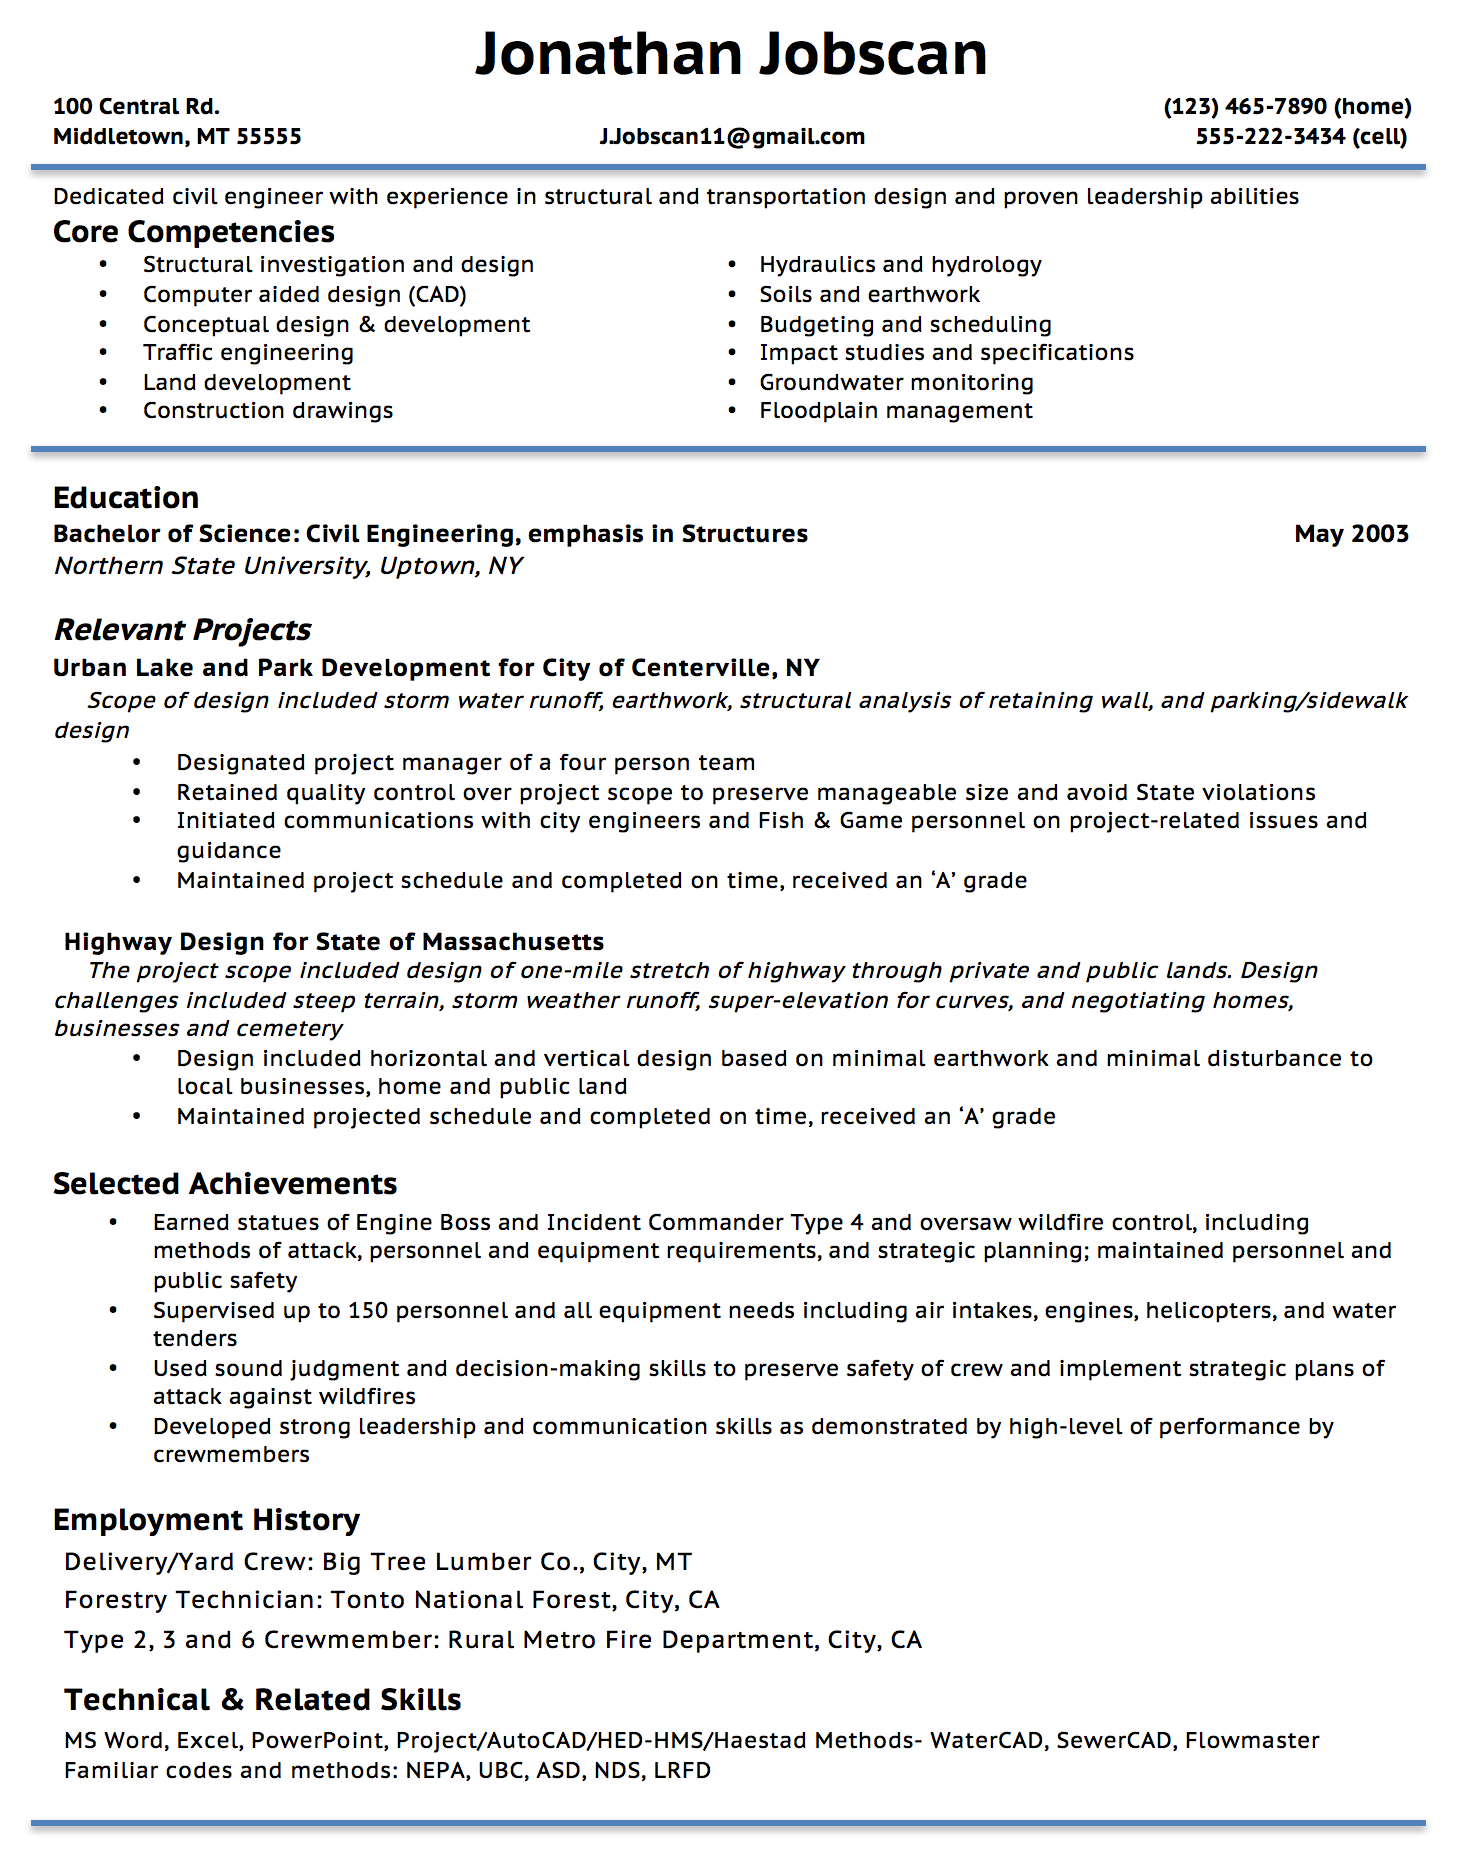 Picnictoimpeachus  Winning Resume Writing Guide  Jobscan With Hot Example Of A Functional Resume Format With Alluring High School Resume No Work Experience Also Word Templates Resume In Addition Construction Resume Examples And Coursework On Resume As Well As Job Resume Definition Additionally Resume Personal Skills From Jobscanco With Picnictoimpeachus  Hot Resume Writing Guide  Jobscan With Alluring Example Of A Functional Resume Format And Winning High School Resume No Work Experience Also Word Templates Resume In Addition Construction Resume Examples From Jobscanco